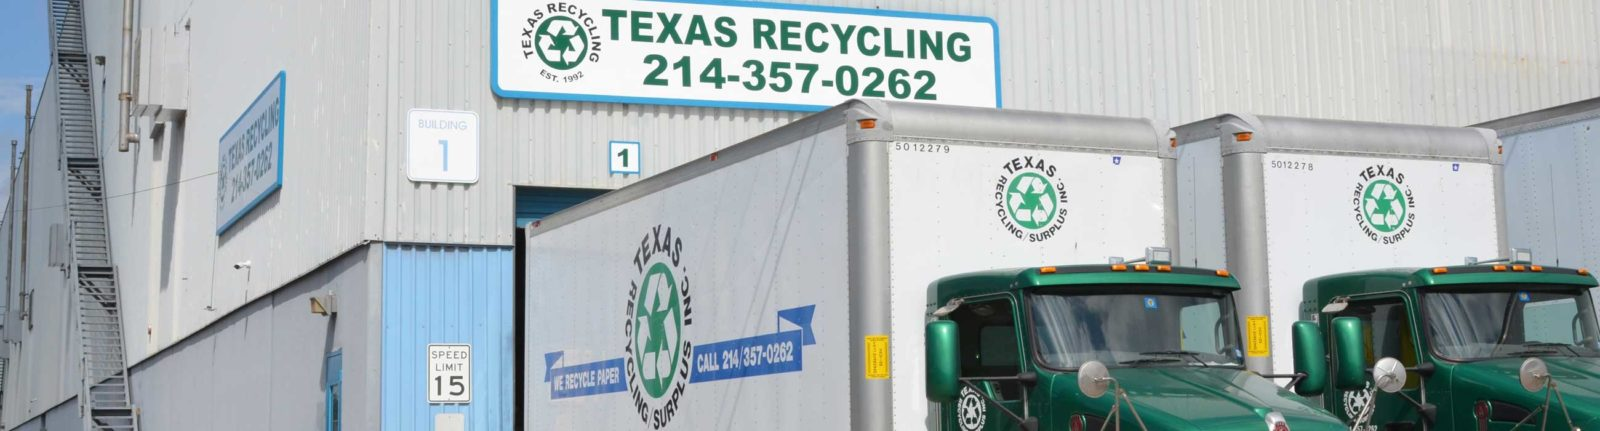 Metal-Recycling-Dallas_TxR-Slider-Trucks